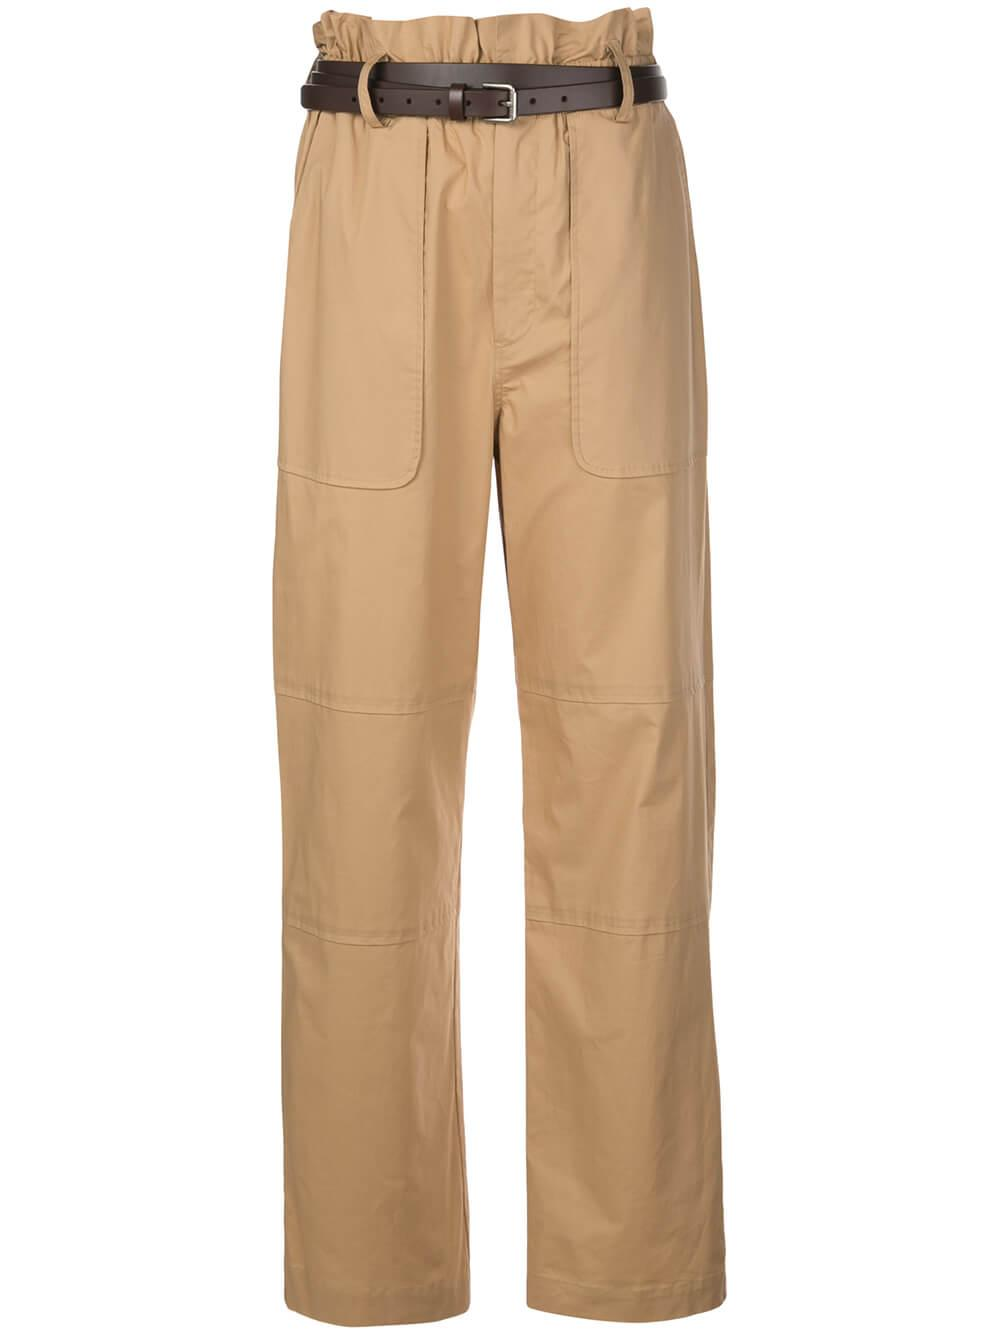 Scott Cotton Pant